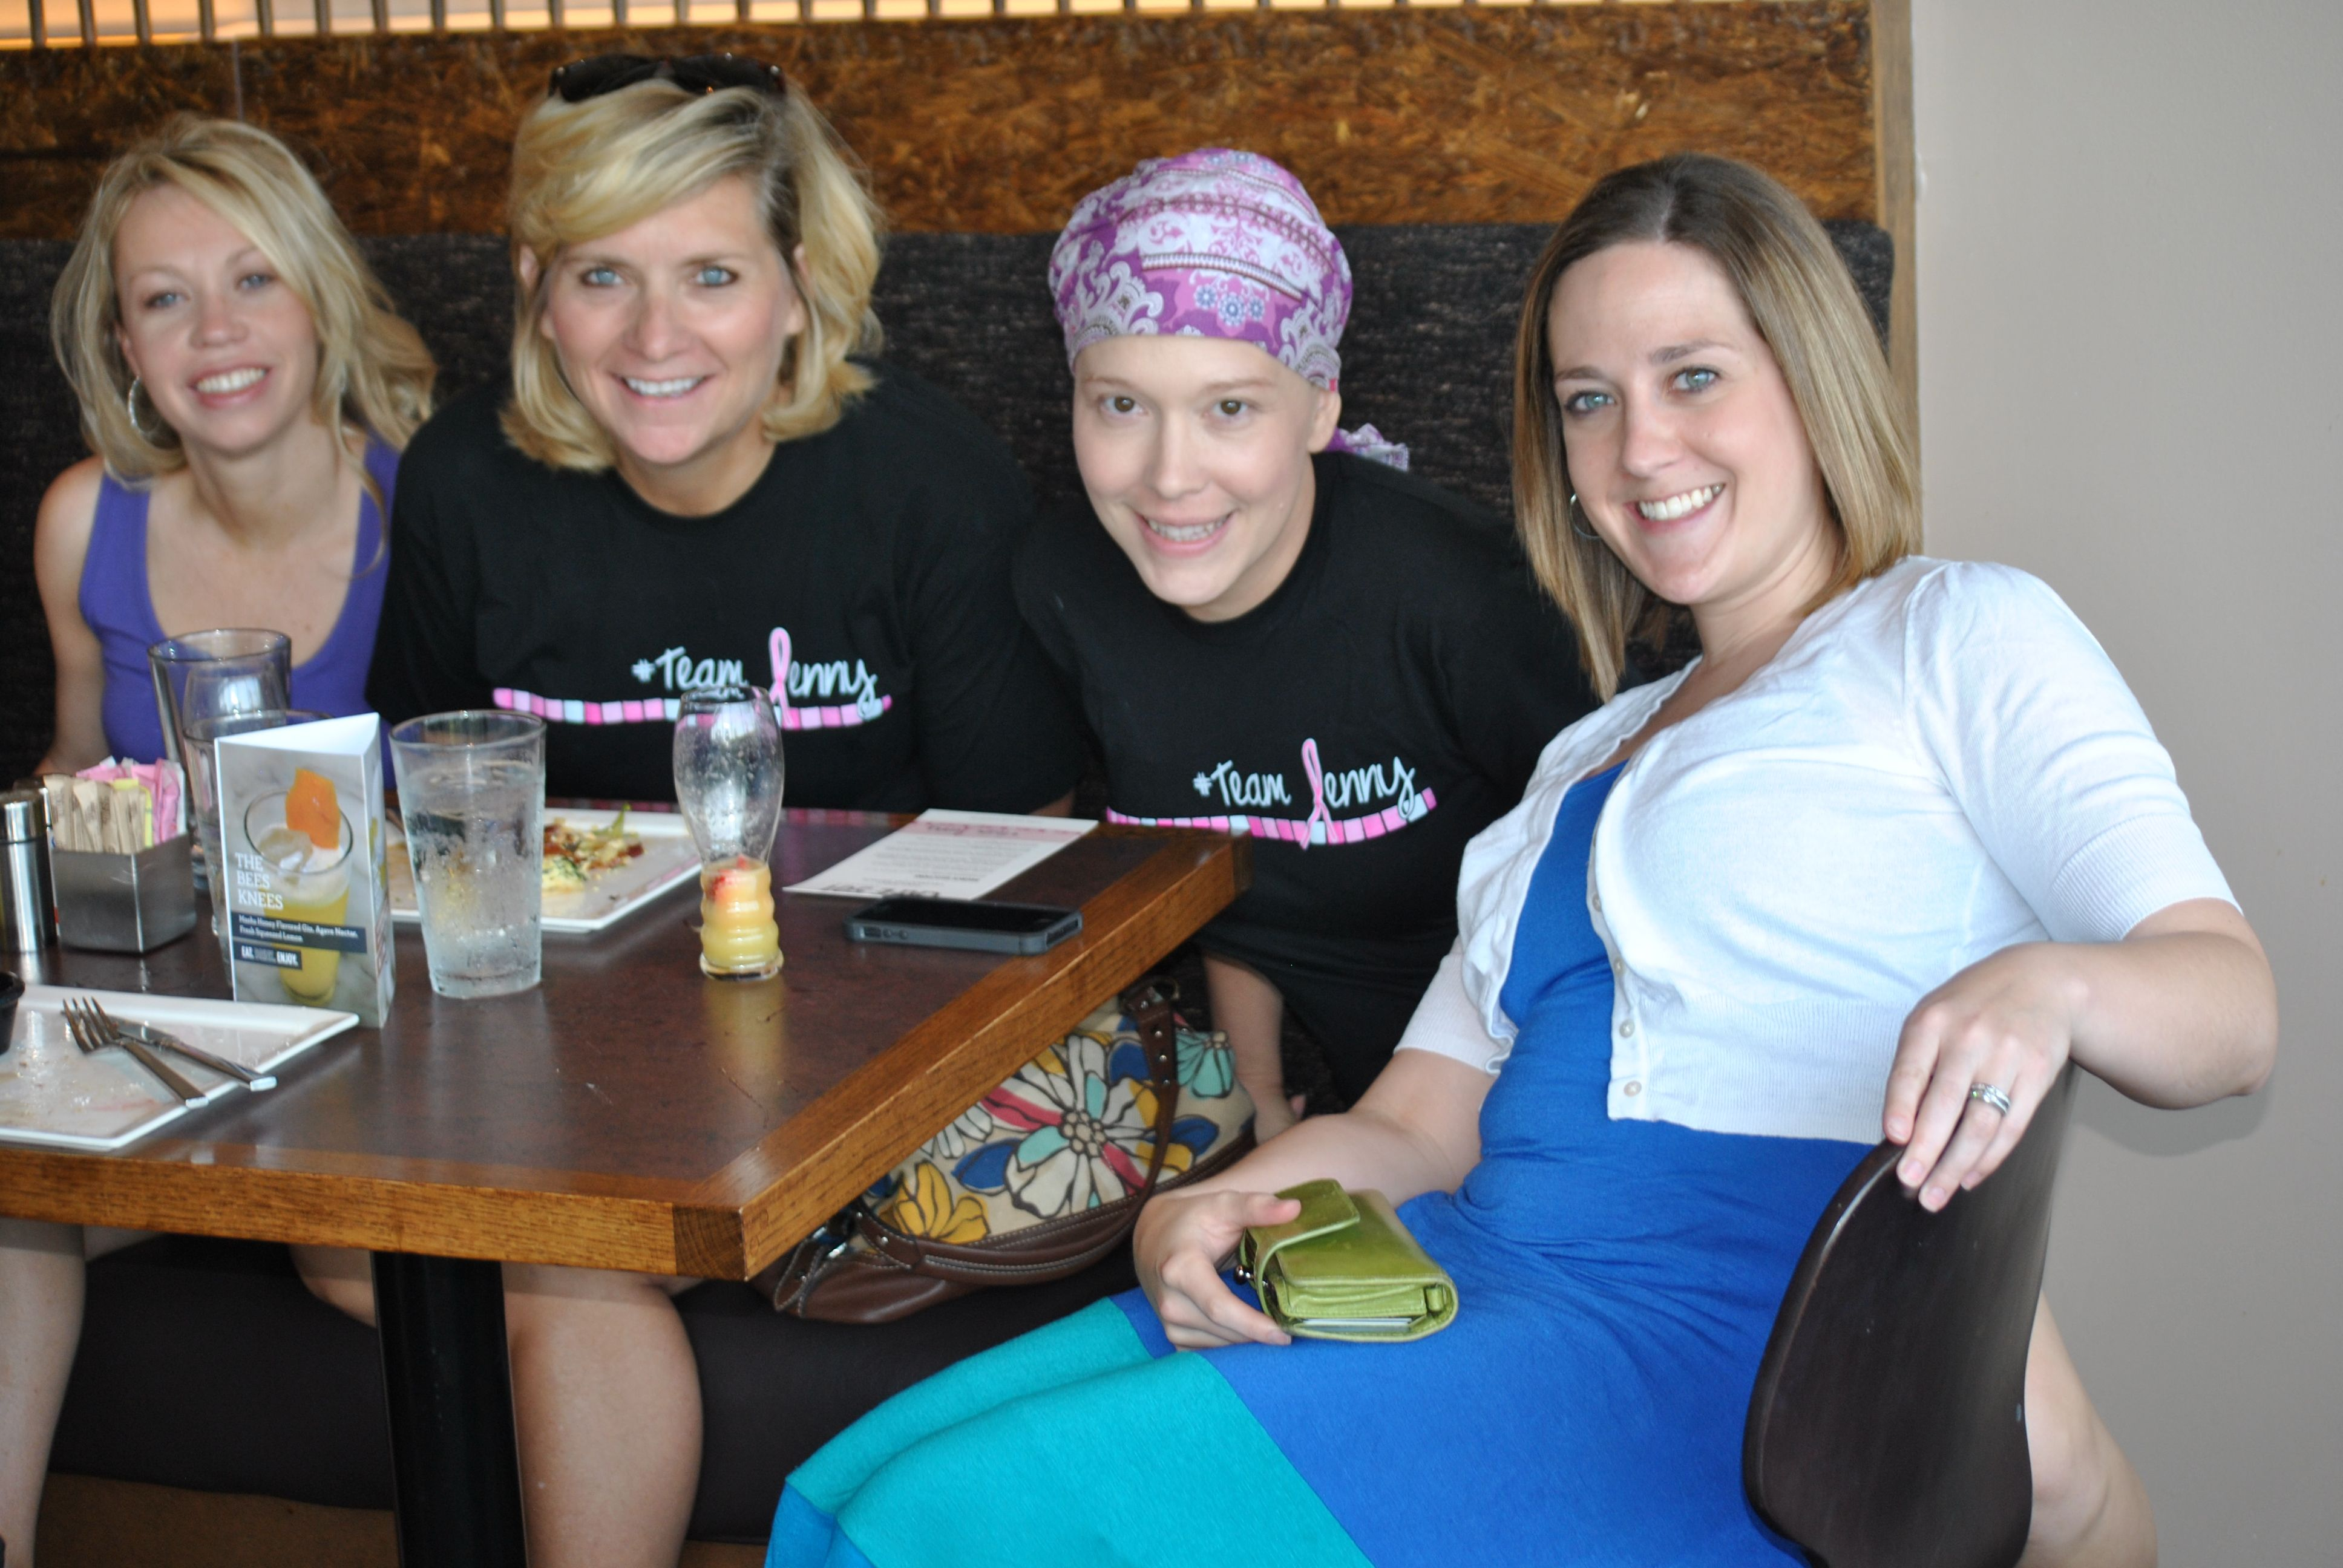 In celebration of my last chemo, all of my friends gathered for a chemo party! (special thanks to Krisan)